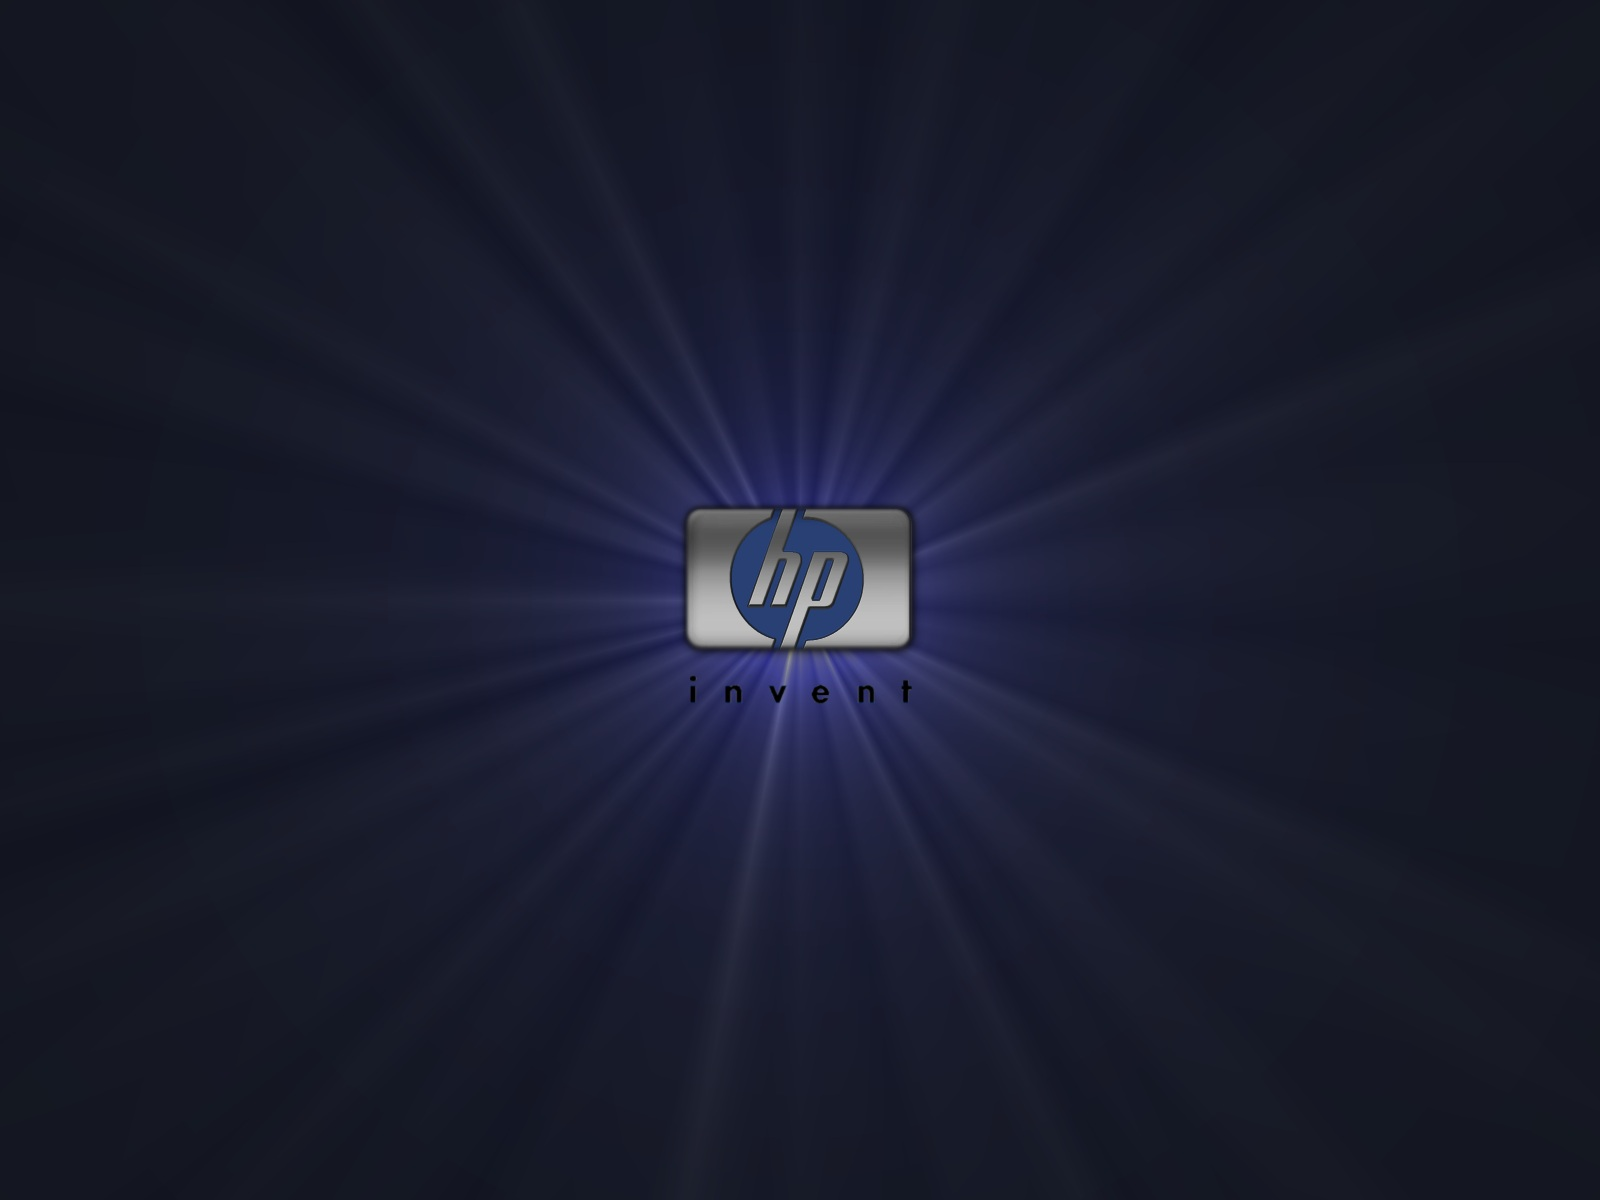 hp wallpapers themes 37 wallpapers